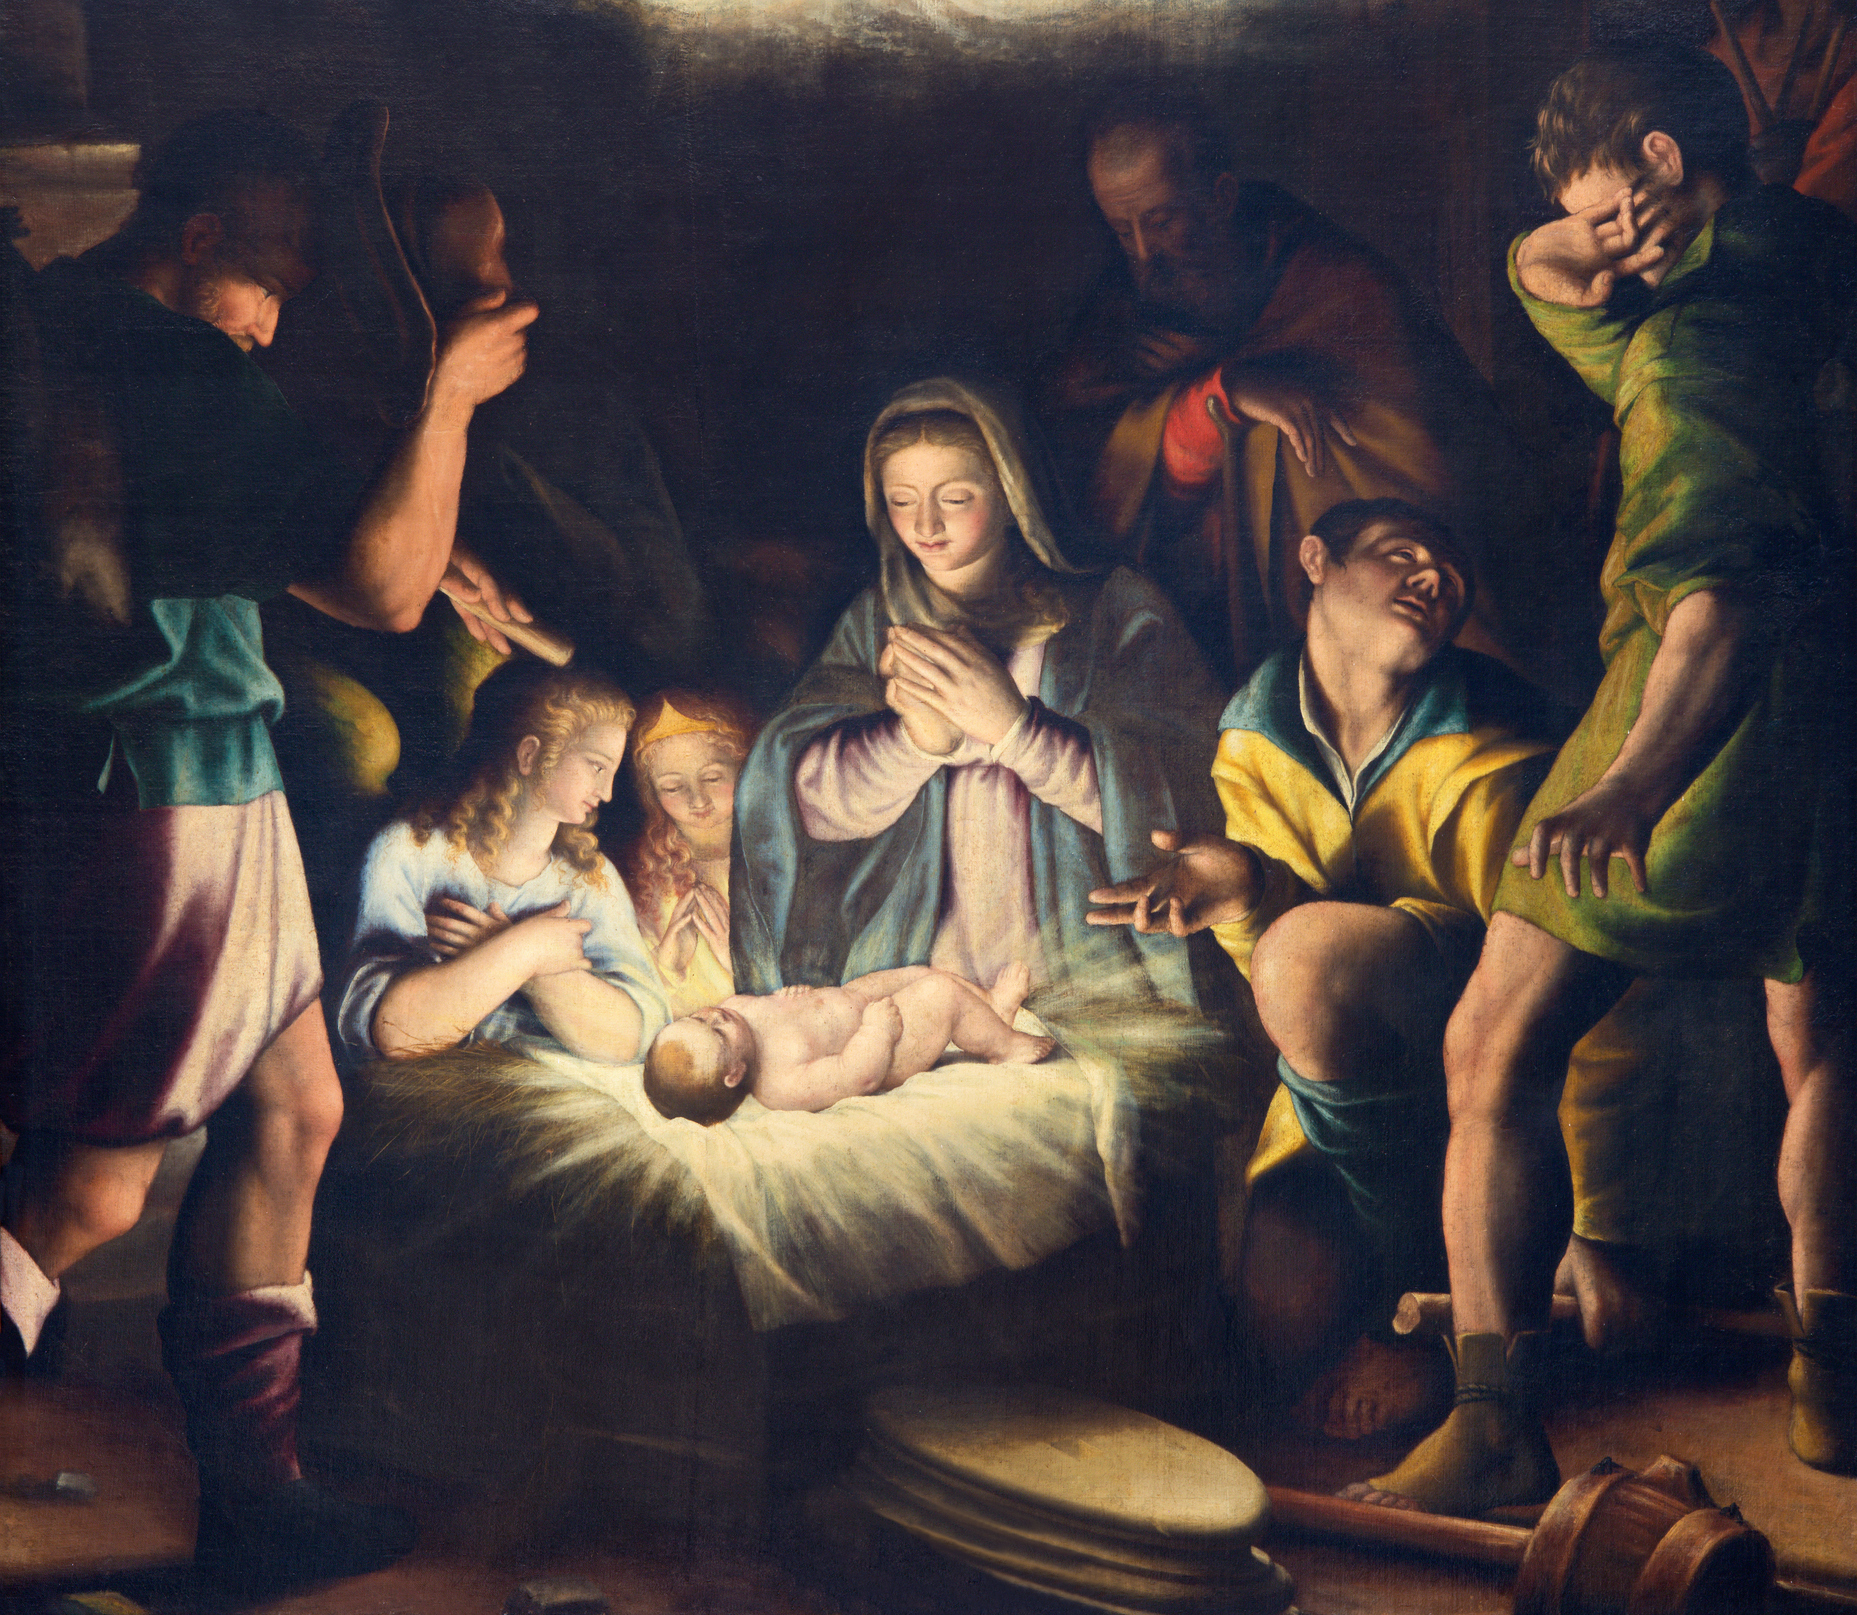 How The Original Christmas Story Links To Modern Day Resistance